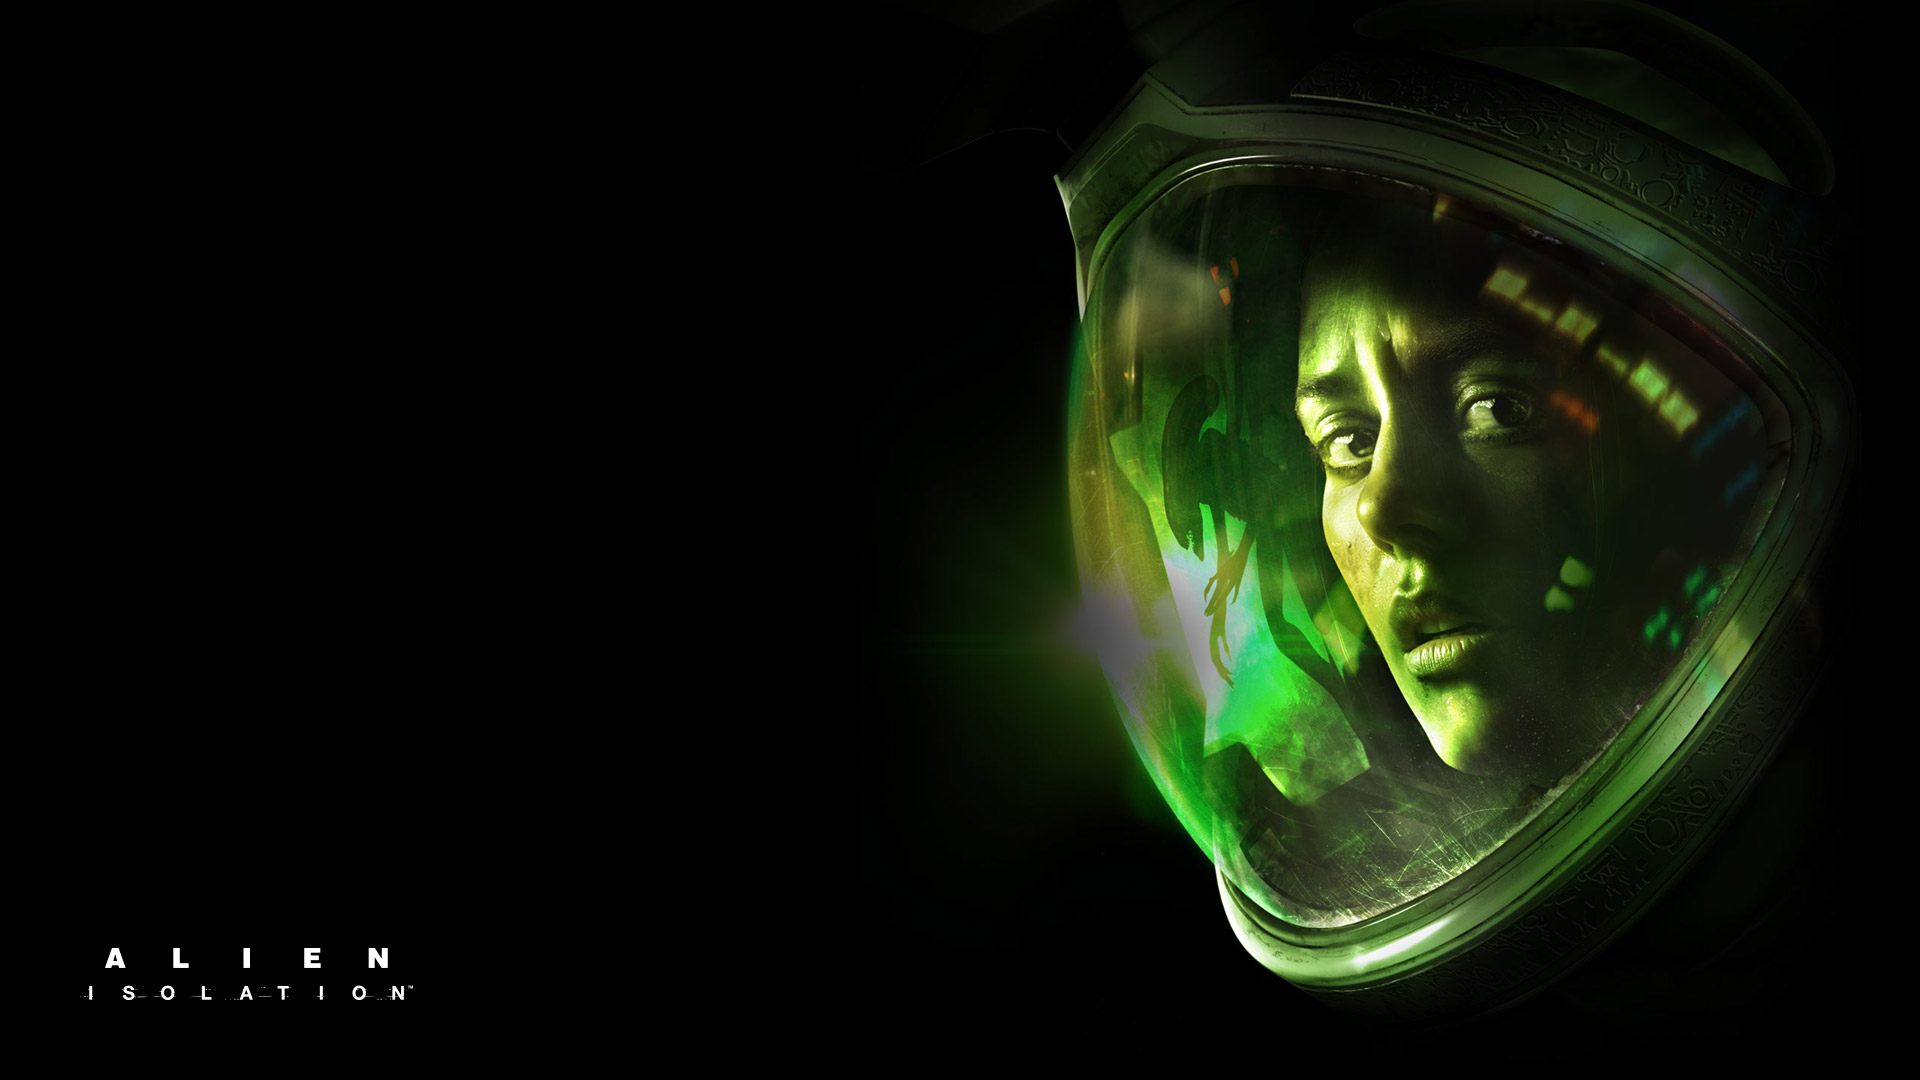 Alien Isolation Wallpaper in 1920x1080